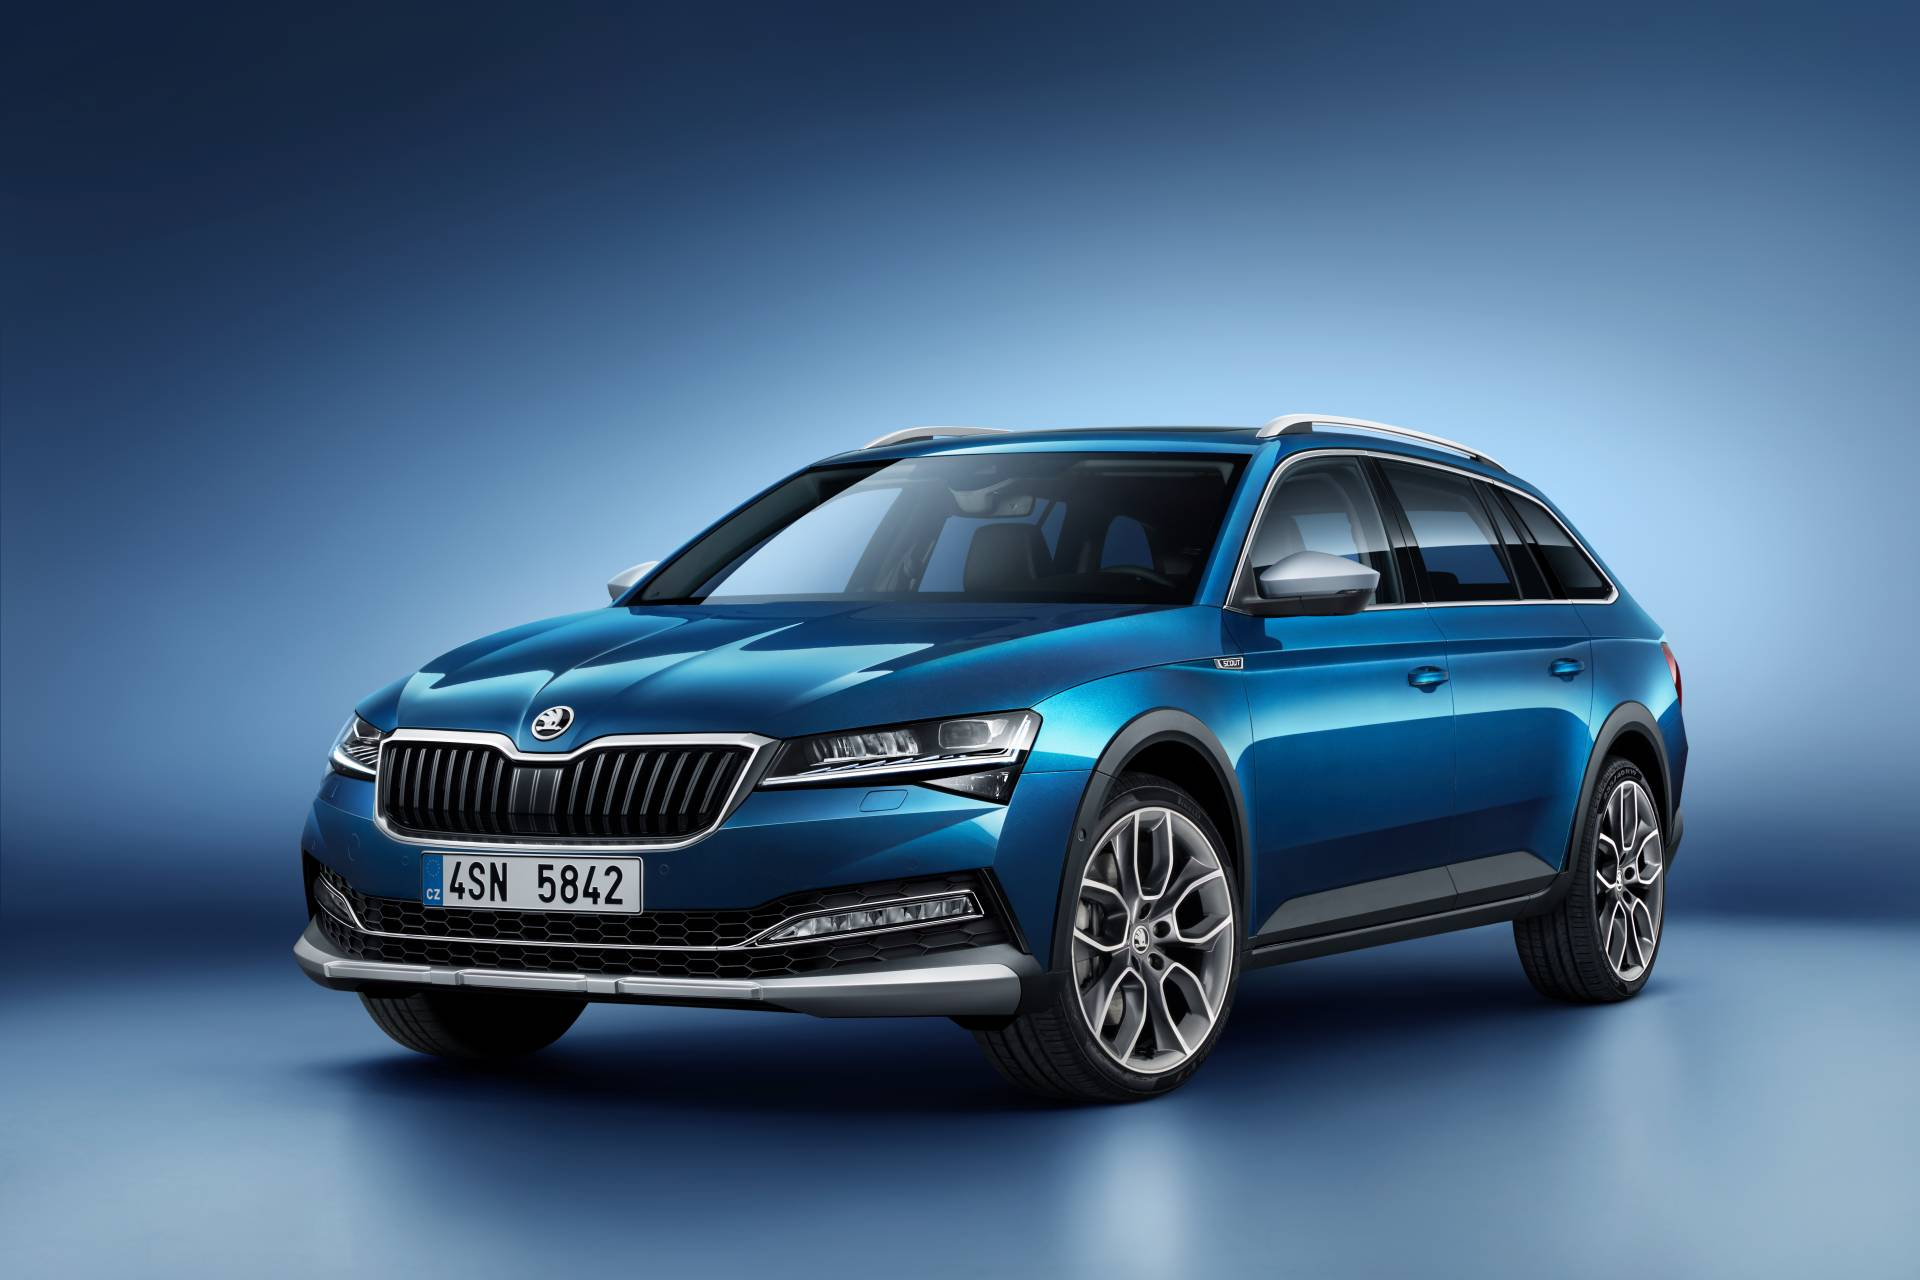 Skoda presents first full-electric auto